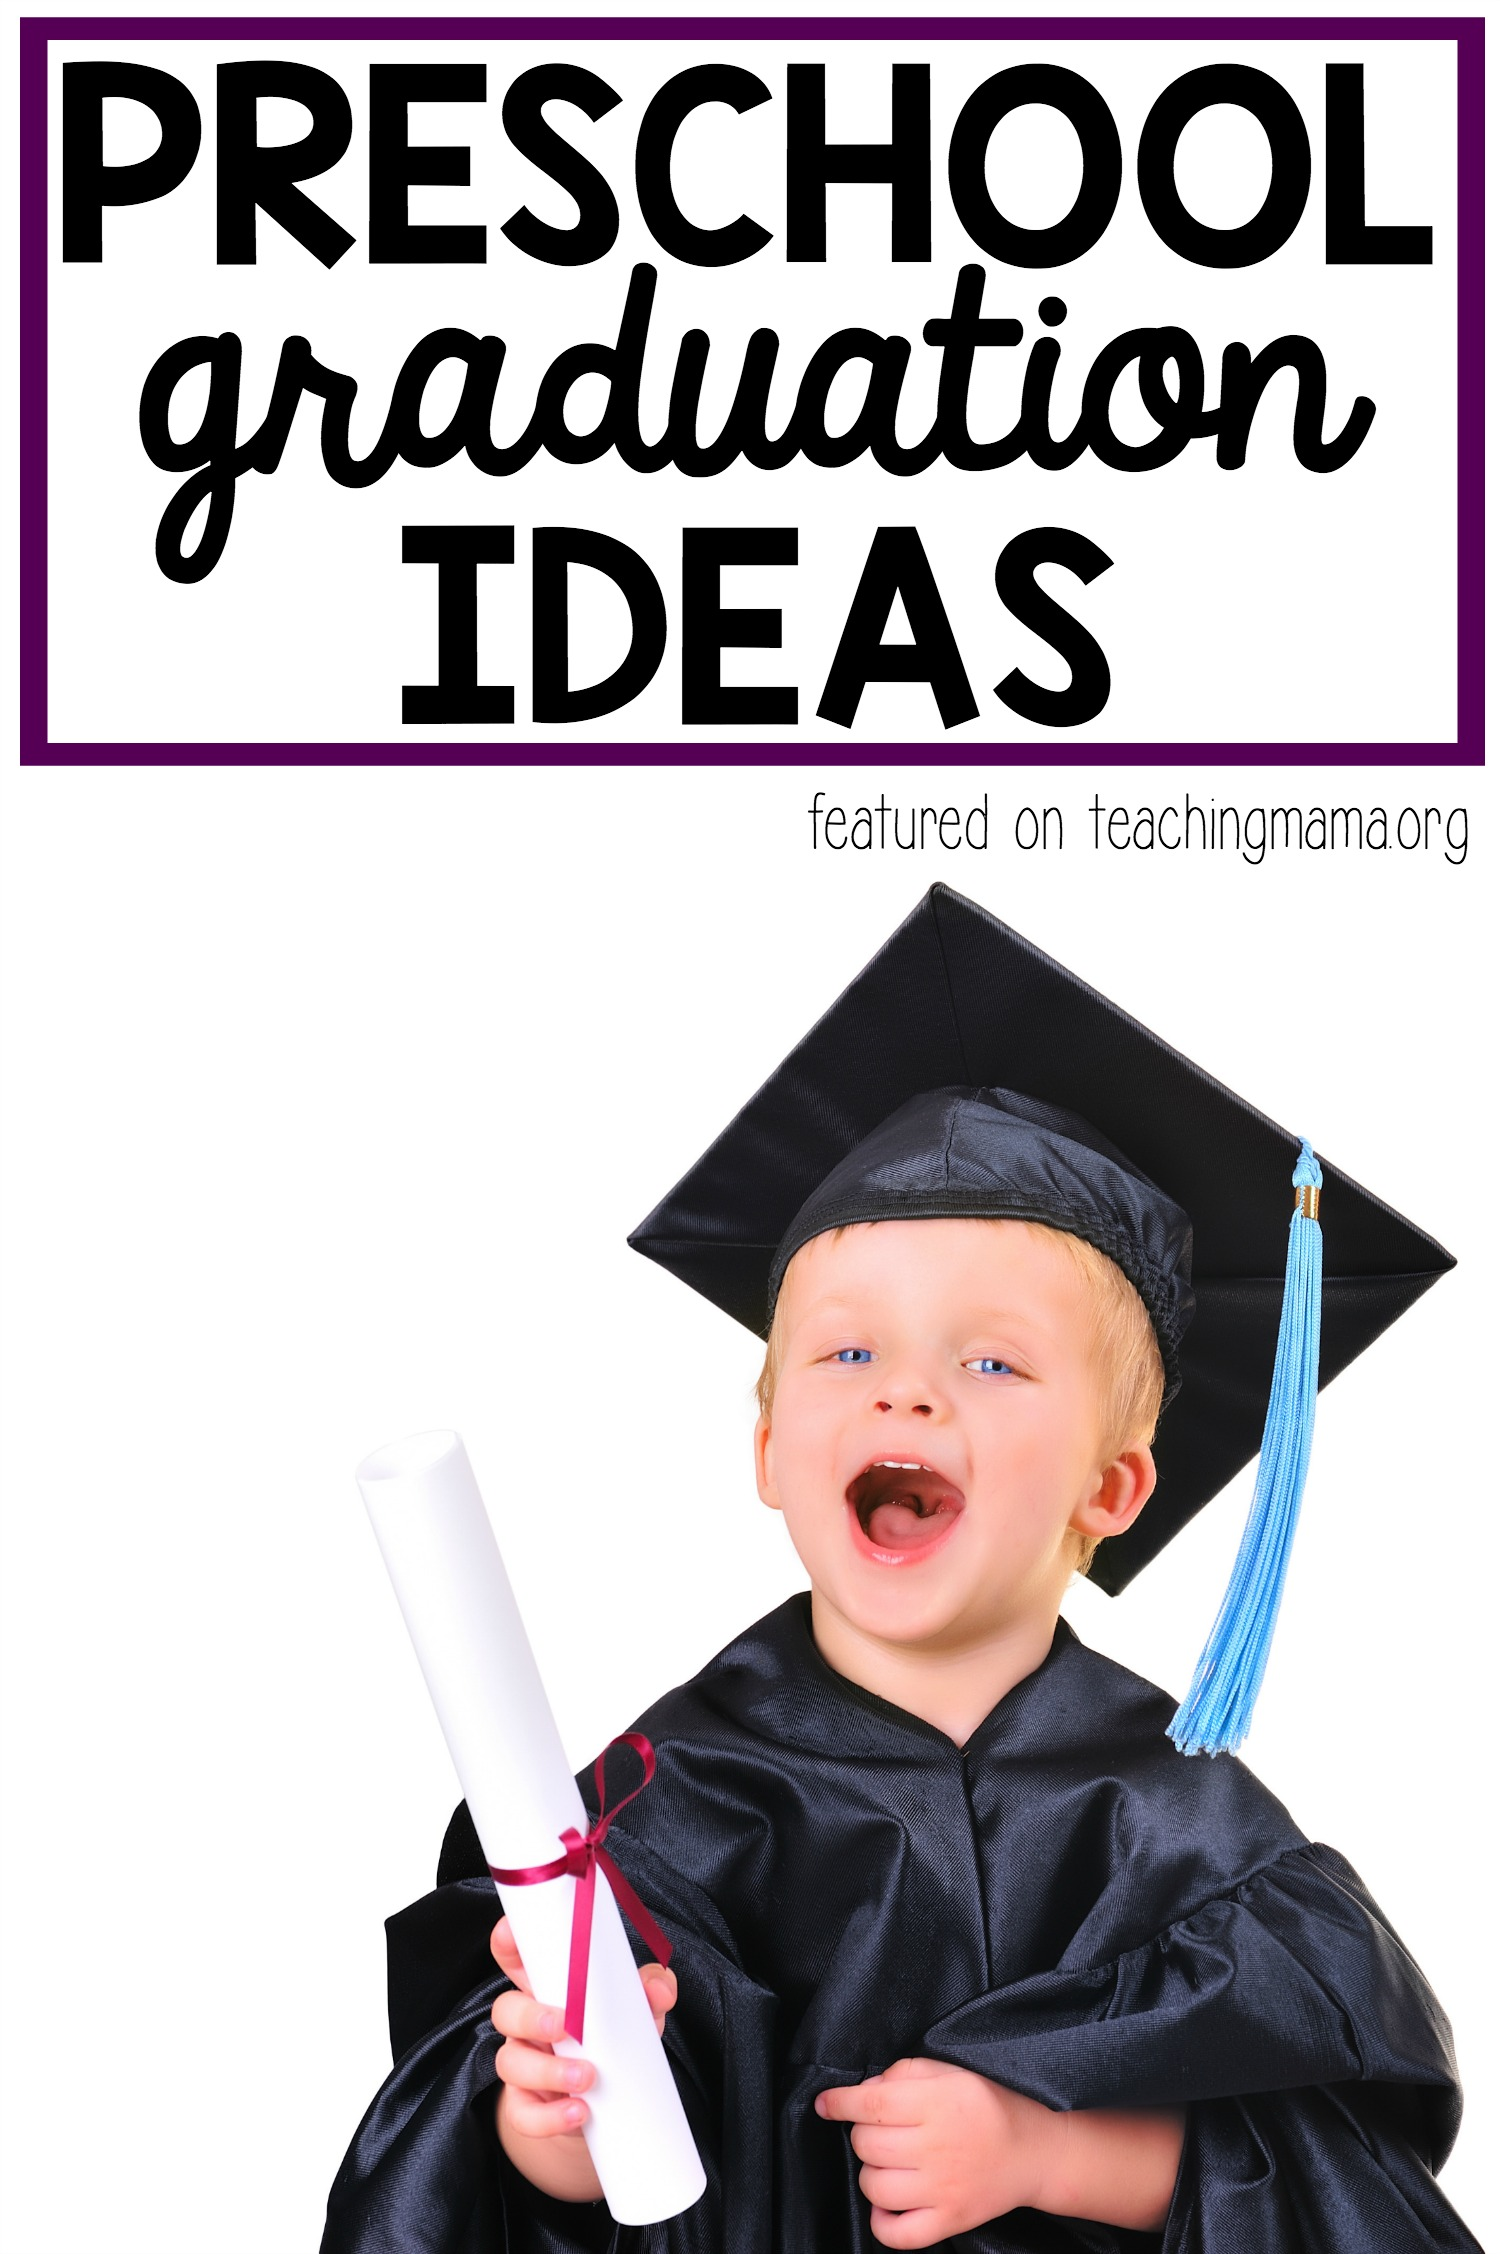 Preschool graduation ideas - Kindergarten graduation decorations ...